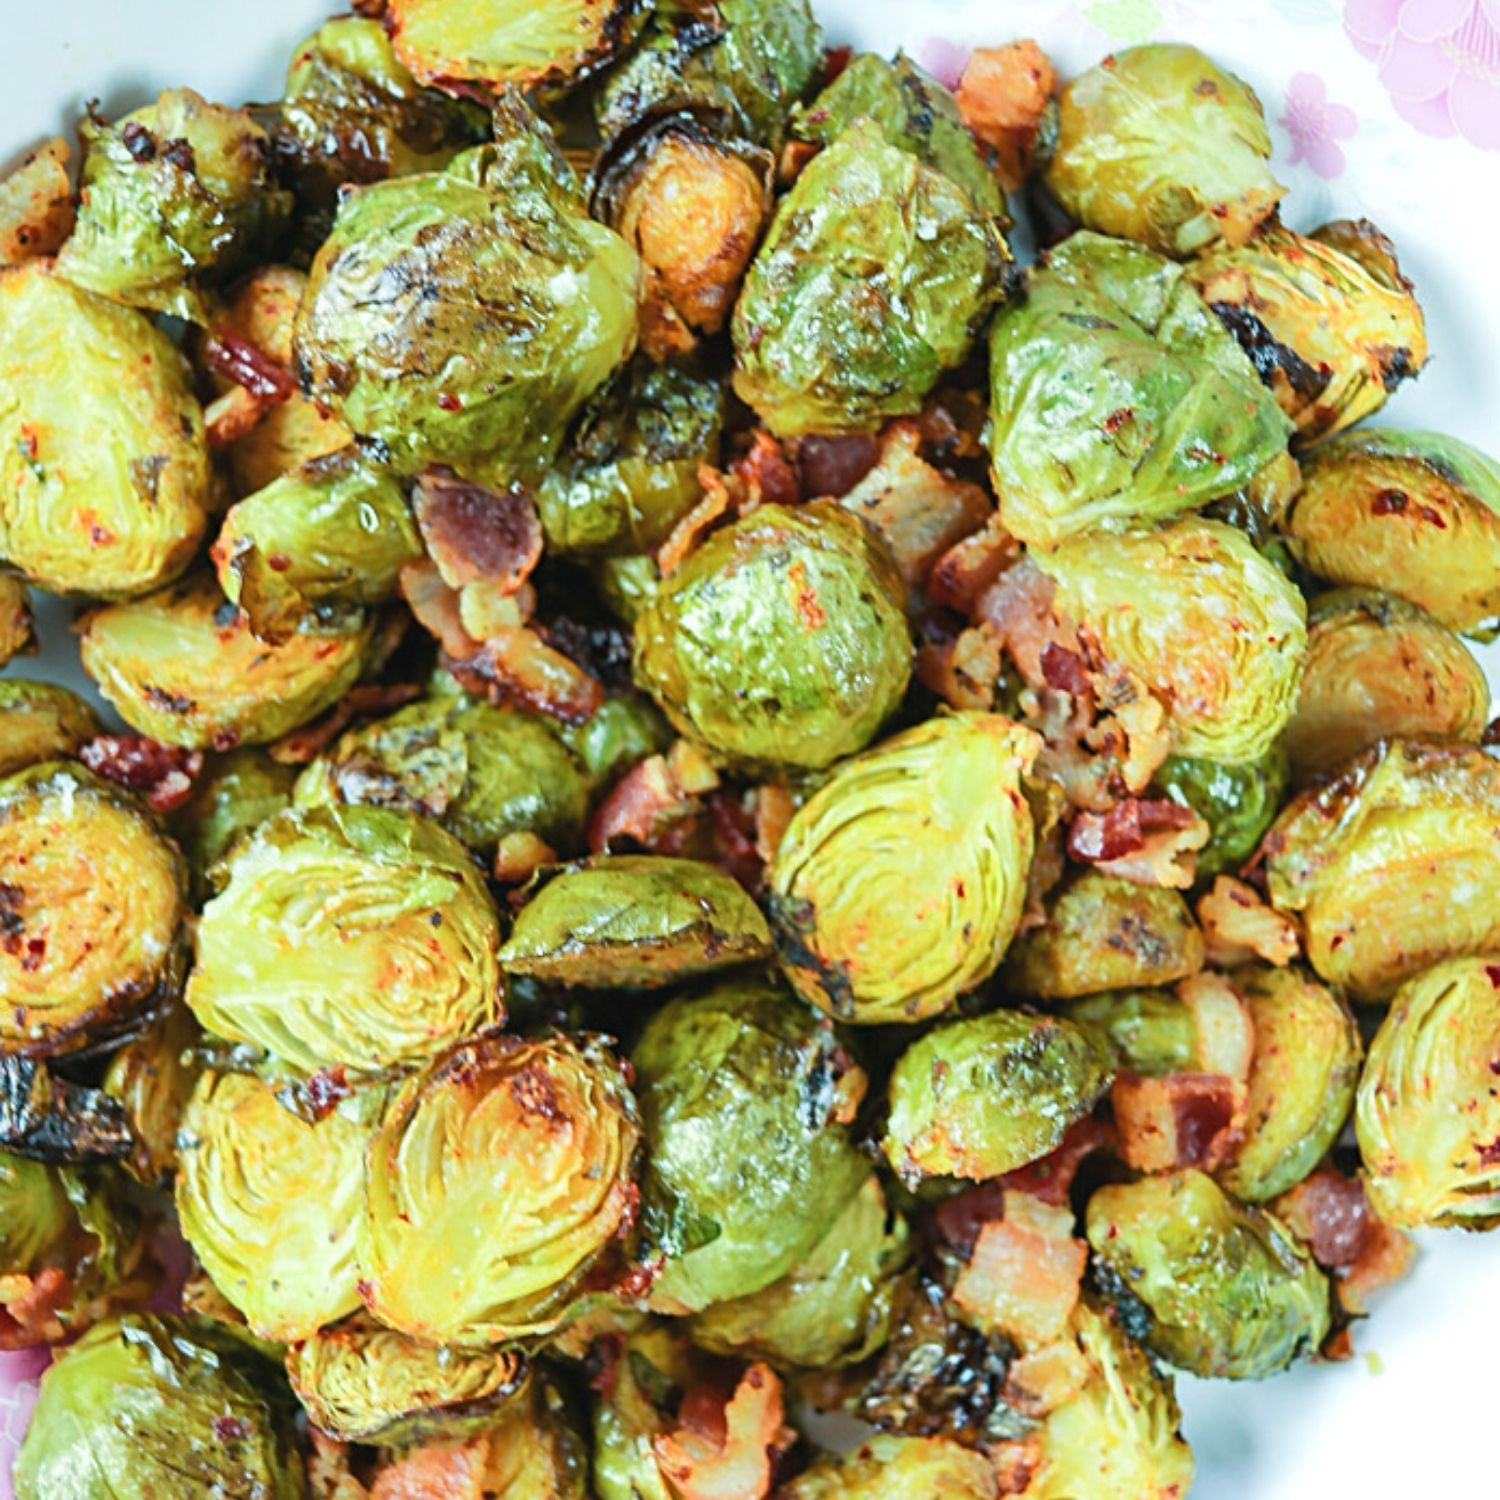 Roasted Brussel Sprouts with Harissa and Bacon